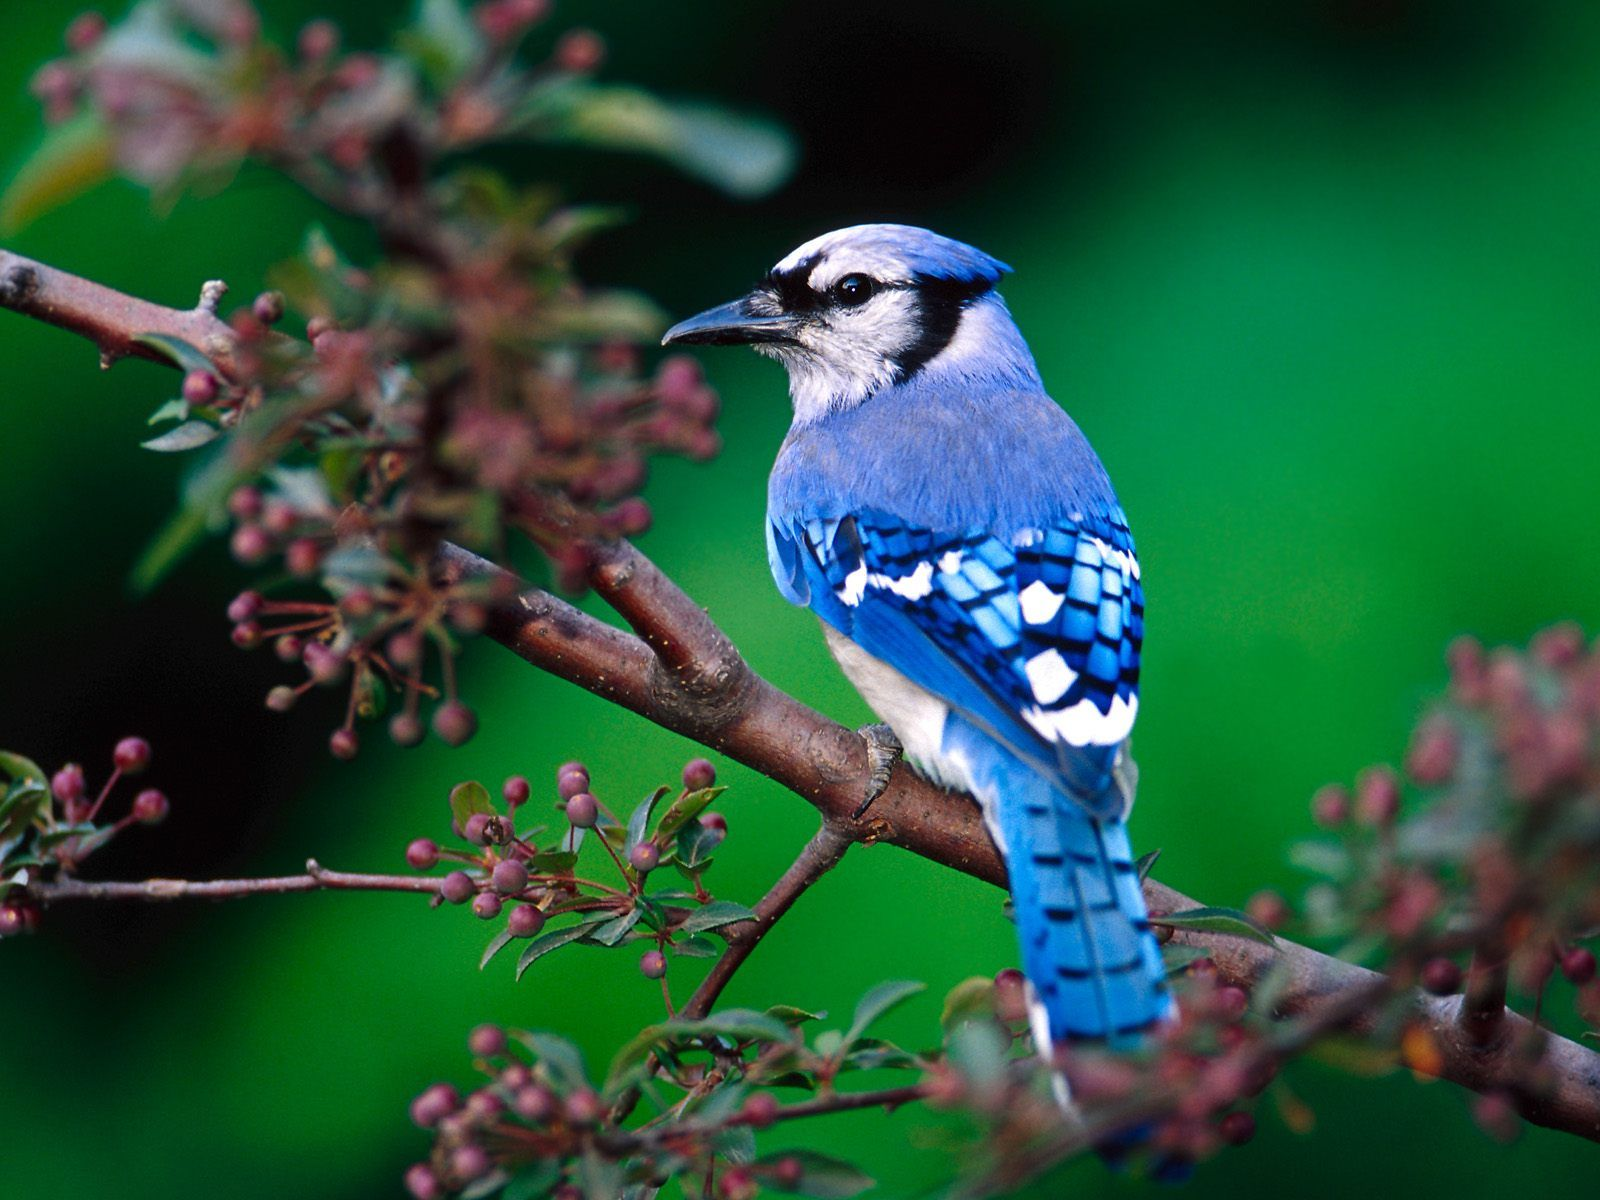 beauty full birds images, beauty full birds photos, beauty